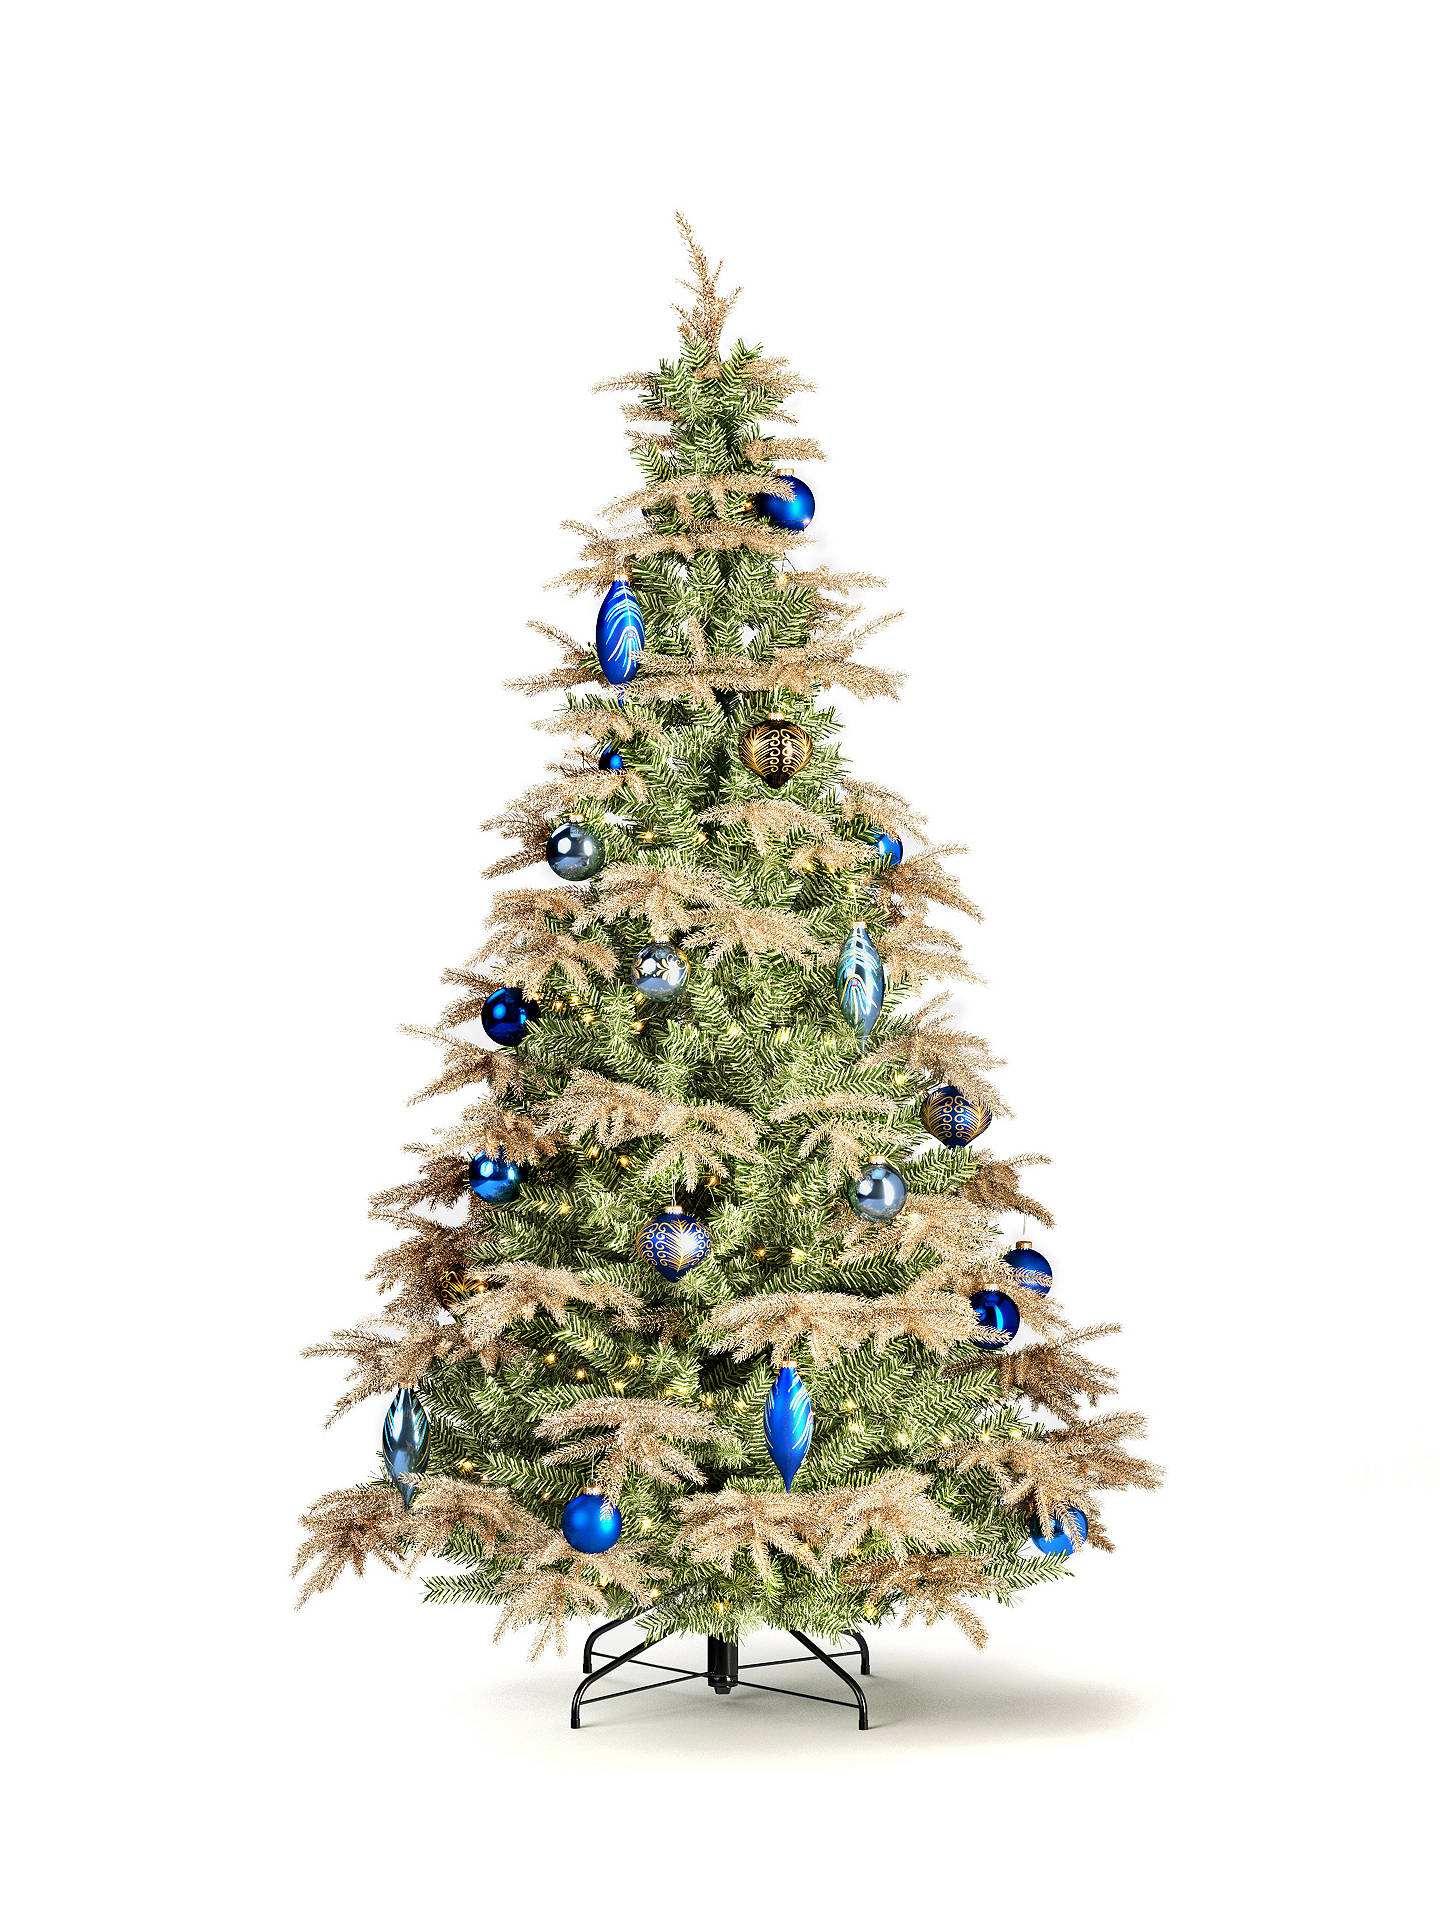 Buy John Lewis & Partners Gabriel Gold Unlit Christmas Tree, 7ft Online at johnlewis.com